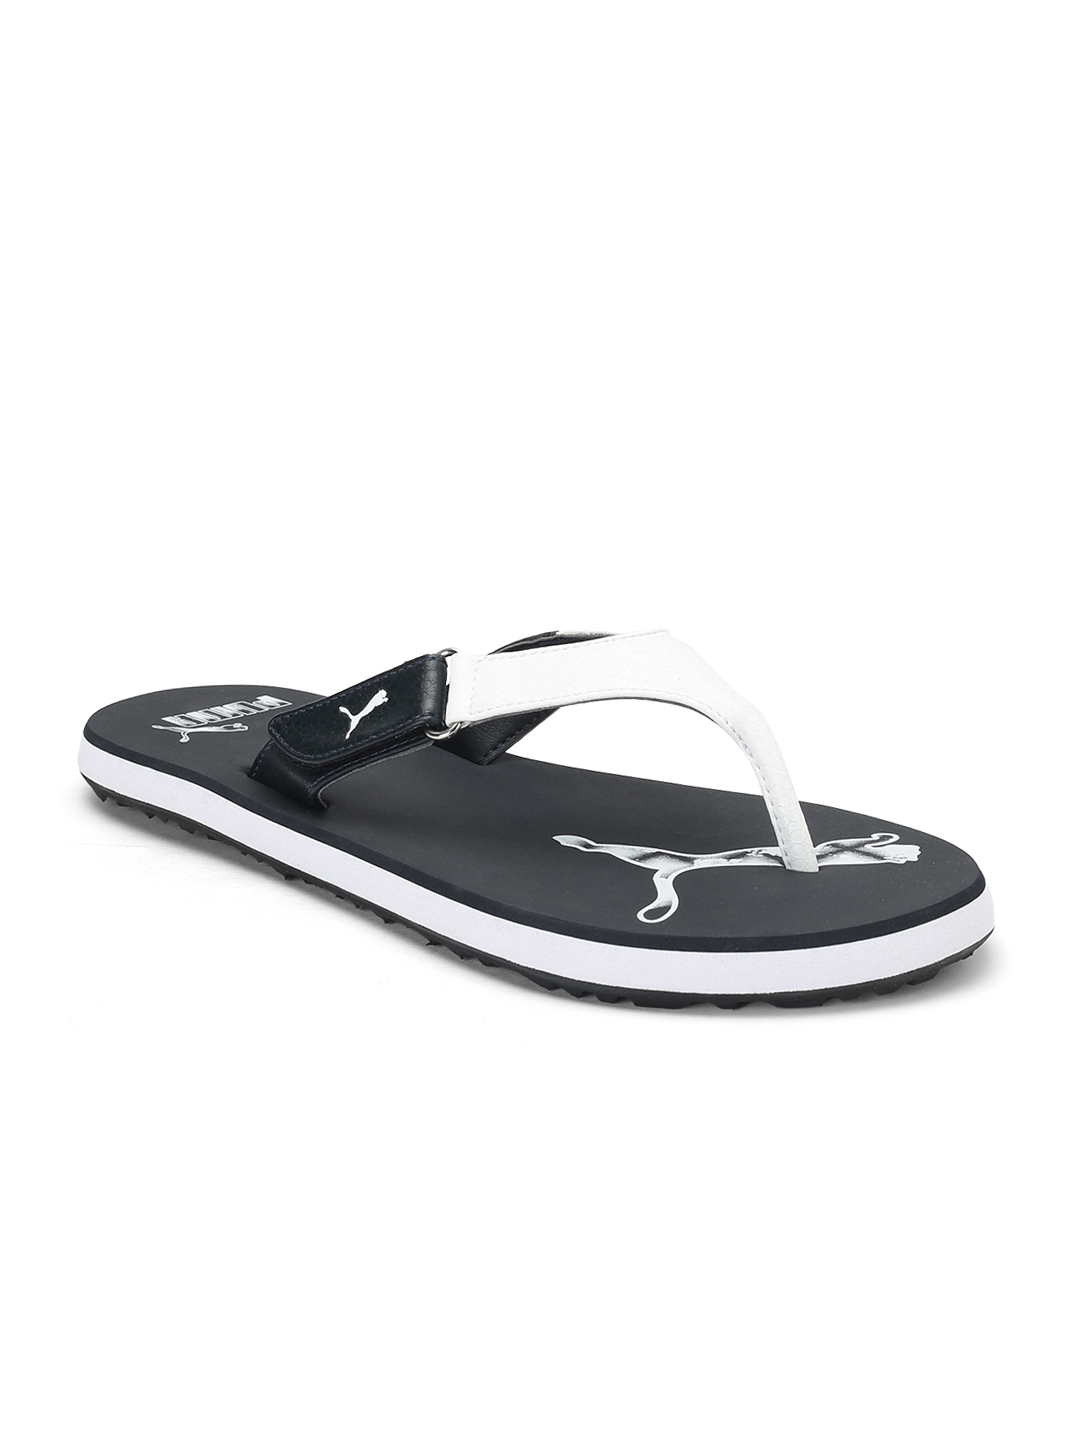 3b7639d39bac Buy Puma Men Black   White Breeze 2 NG IDP Flip Flops - Flip Flops ...